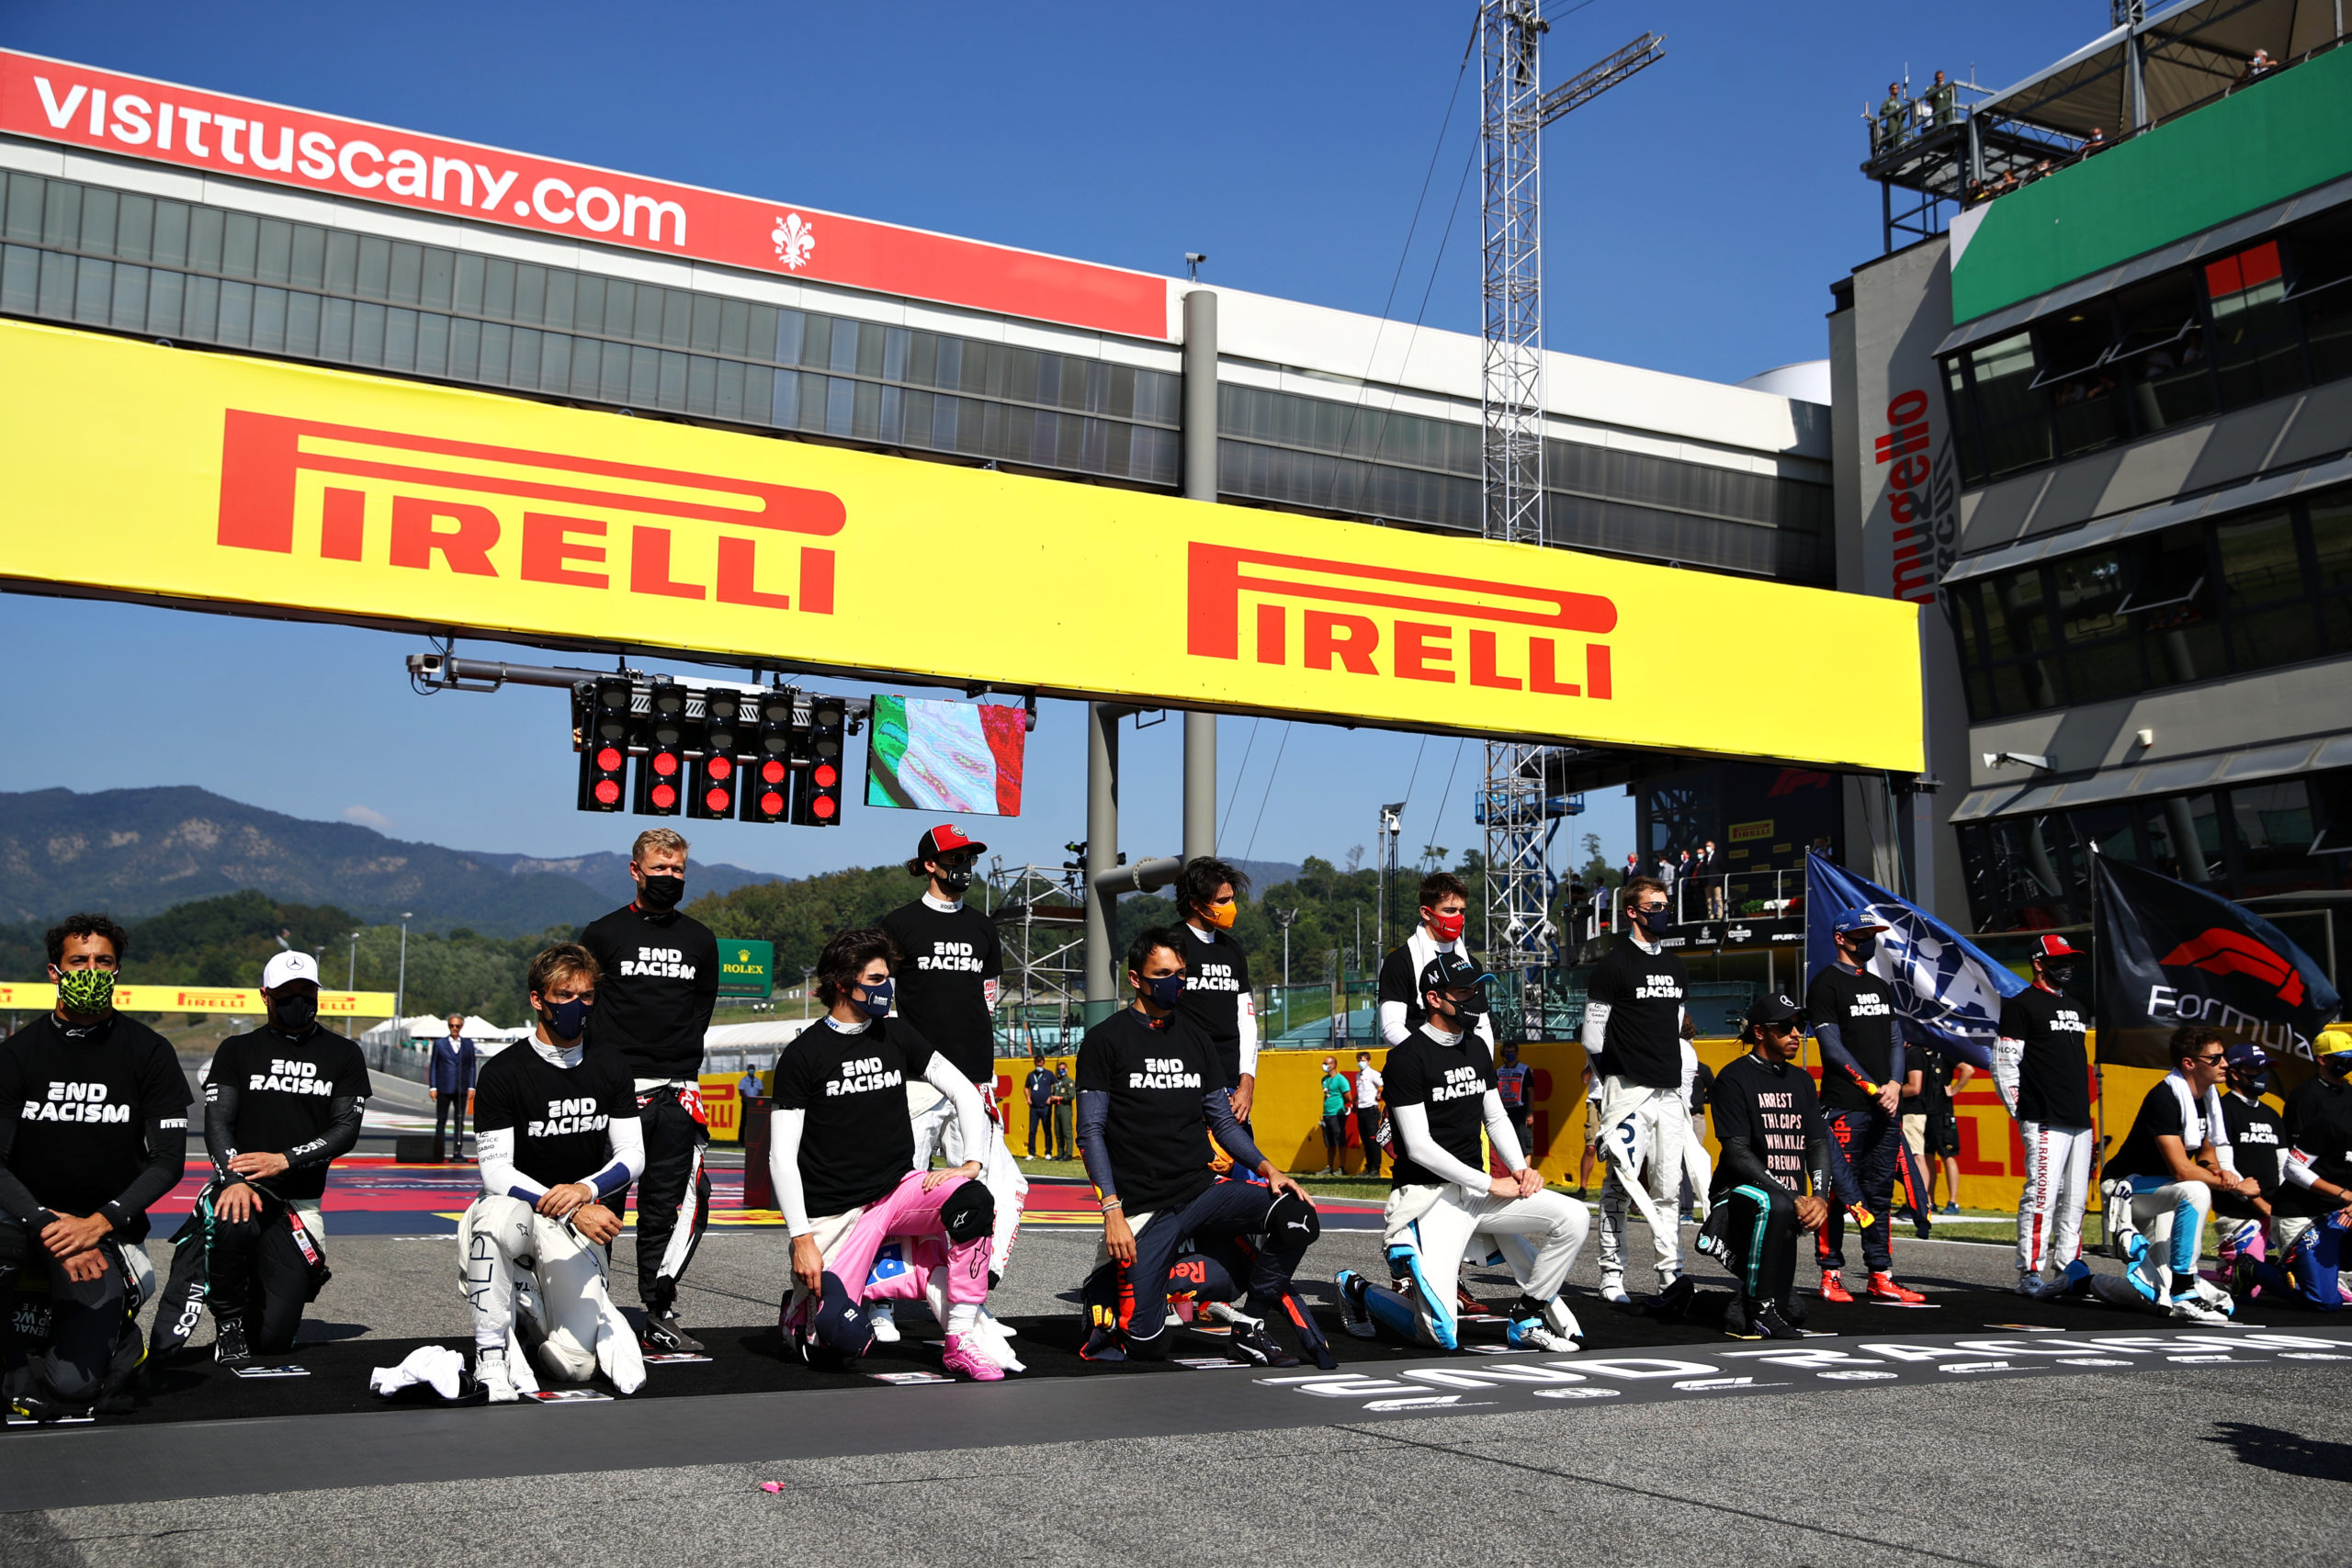 SCARPERIA, ITALY - SEPTEMBER 13: F1 drivers including Pierre Gasly of France and Scuderia AlphaTauri and Alexander Albon of Thailand and Red Bull Racing stand and kneel on the grid in support of ending racism before the F1 Grand Prix of Tuscany at Mugello Circuit on September 13, 2020 in Scarperia, Italy. (Photo by Mark Thompson/Getty Images) // Getty Images / Red Bull Content Pool  // SI202009130169 // Usage for editorial use only //